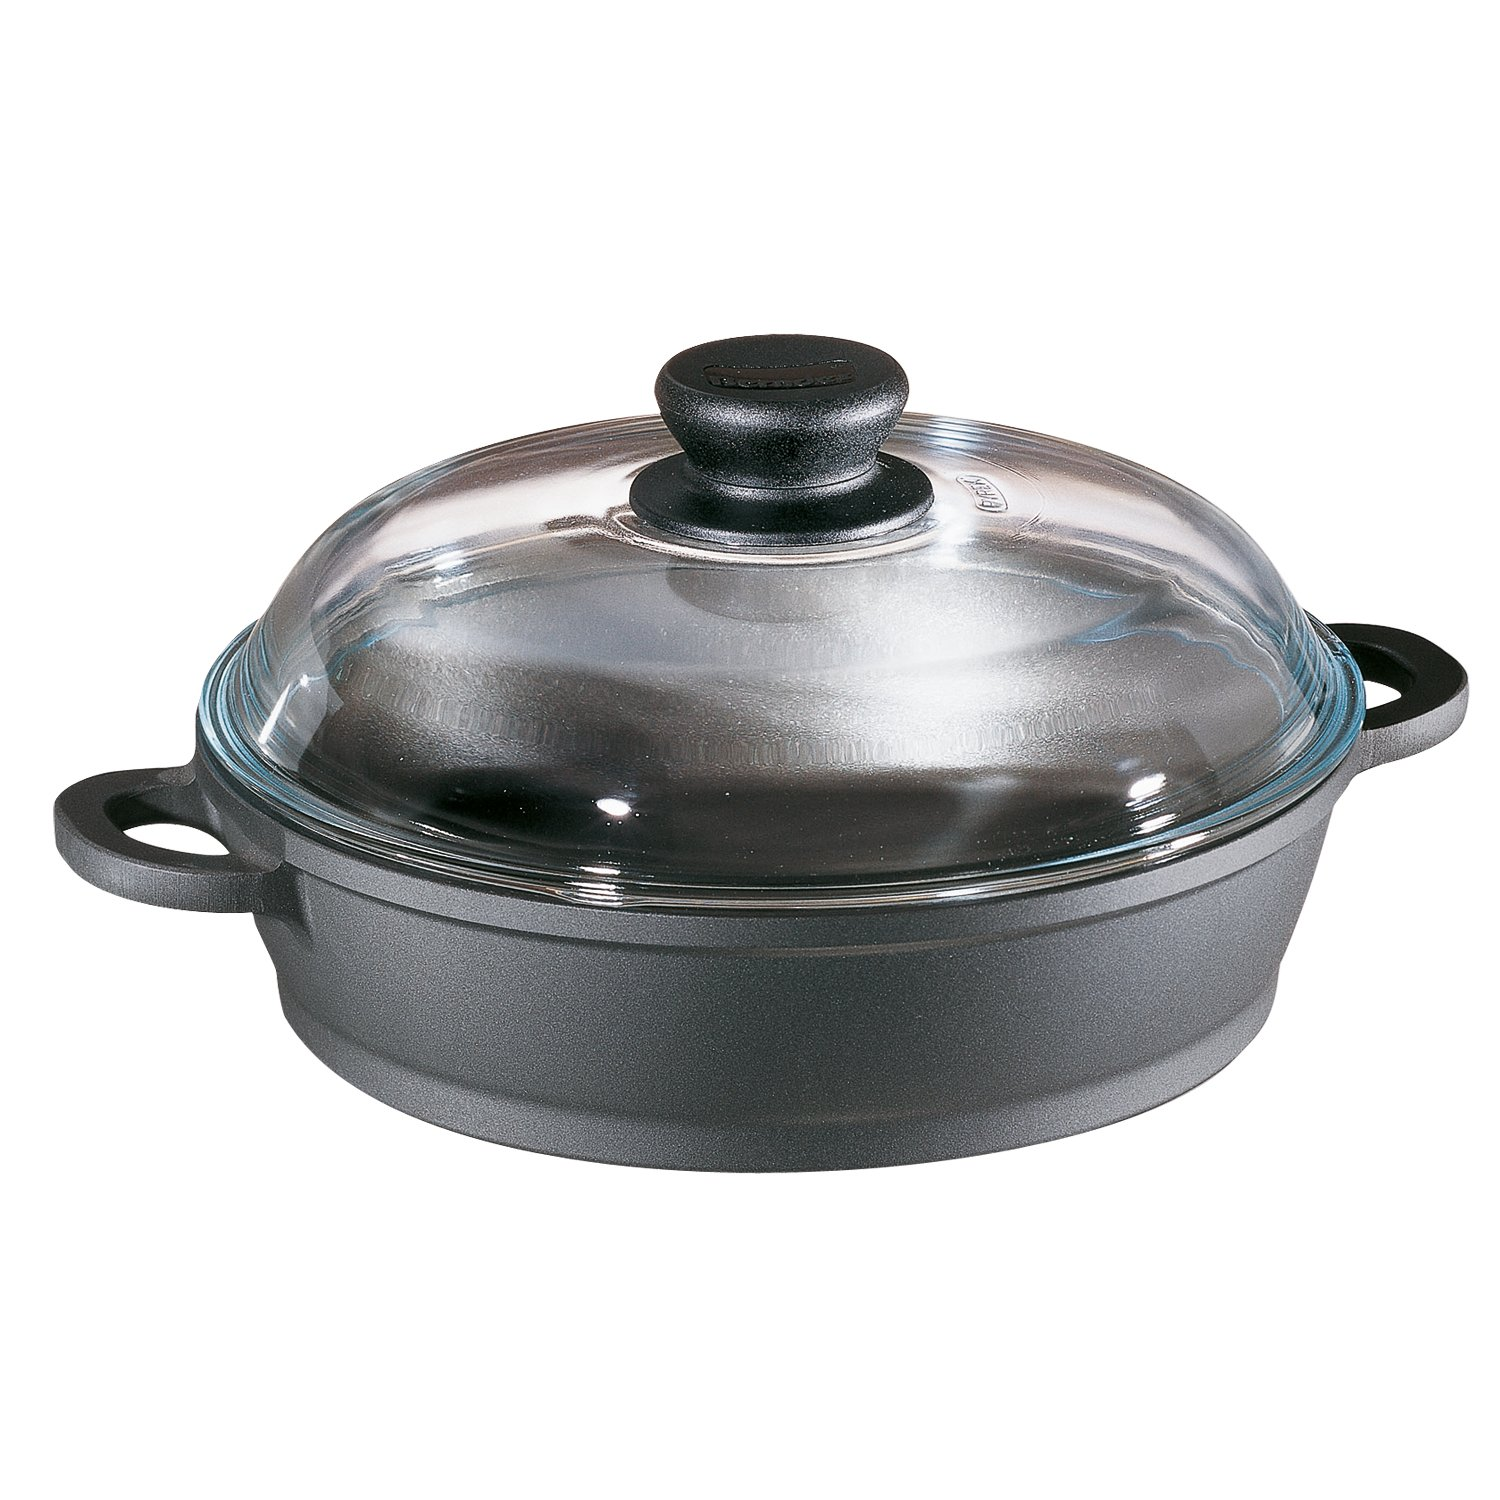 Berndes 674049 Tradition Sauté Casserole Pan with Glass Lid, 11 Inches